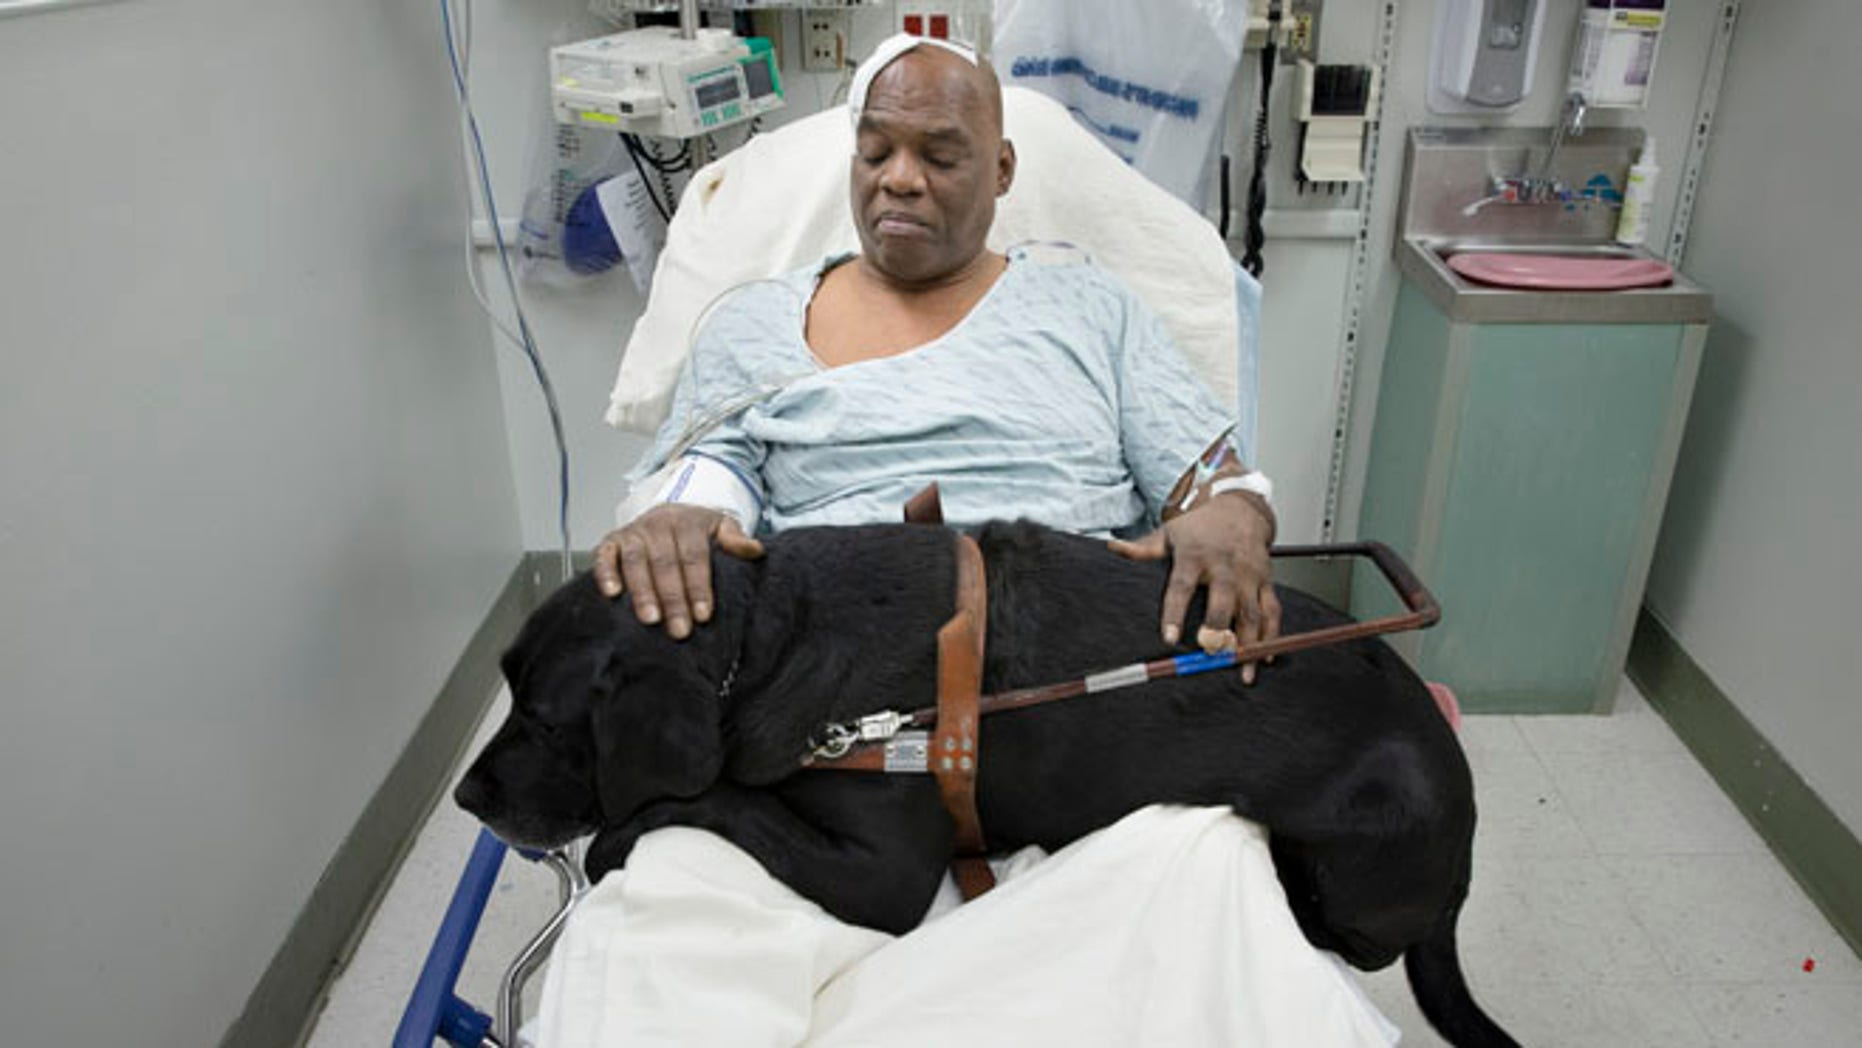 Dec. 17: Cecil Williams pets his guide dog Orlando in his hospital bed following a fall onto subway tracks from the platform in New York.